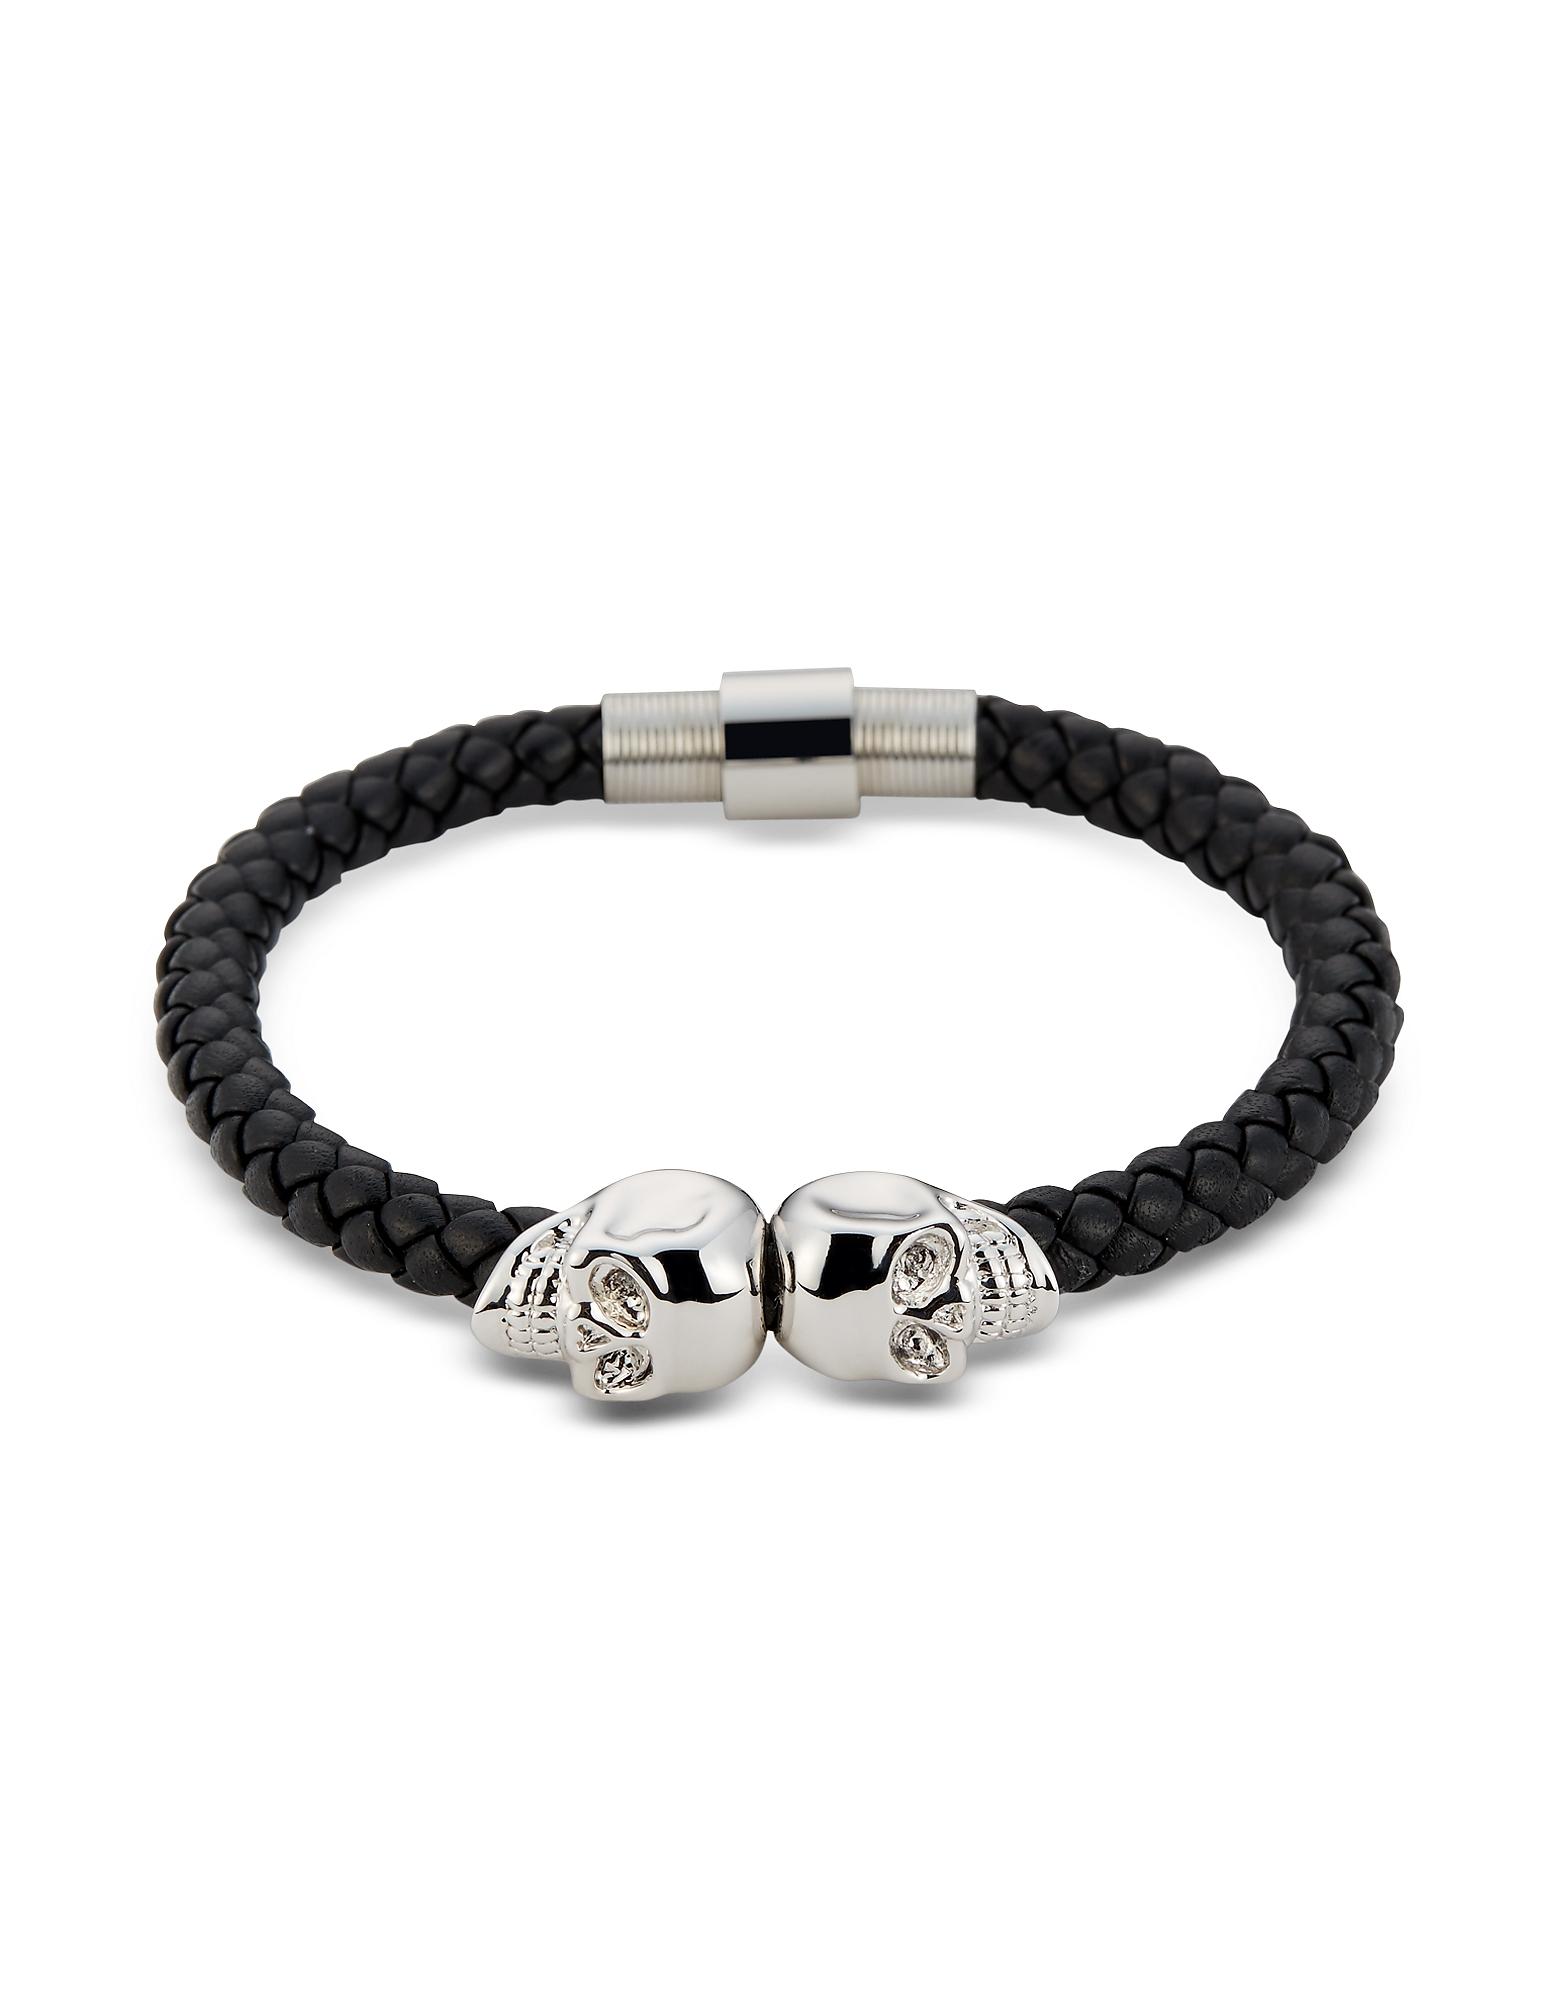 Northskull Men's Bracelets, Black Nappa Leather & Rhodium Twin Skull Men's Bracelet